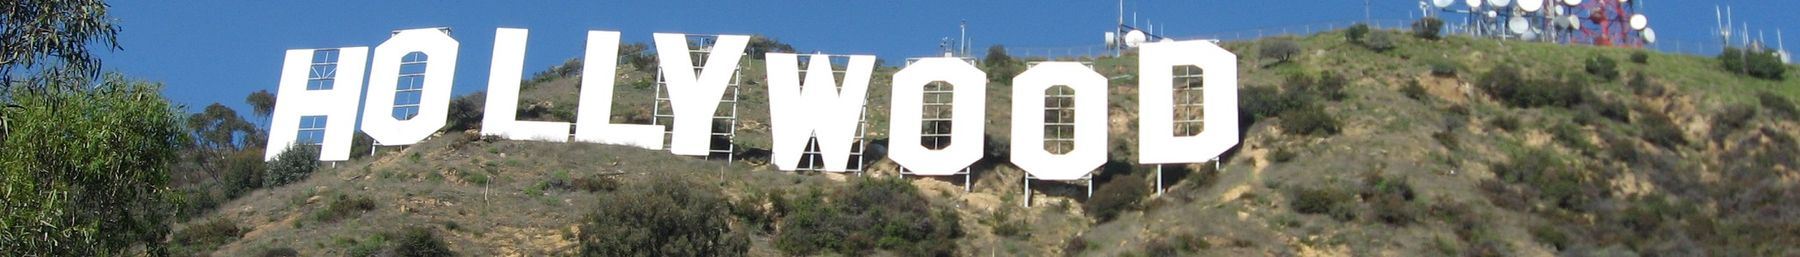 Hollywood wikivoyage banner2.jpg